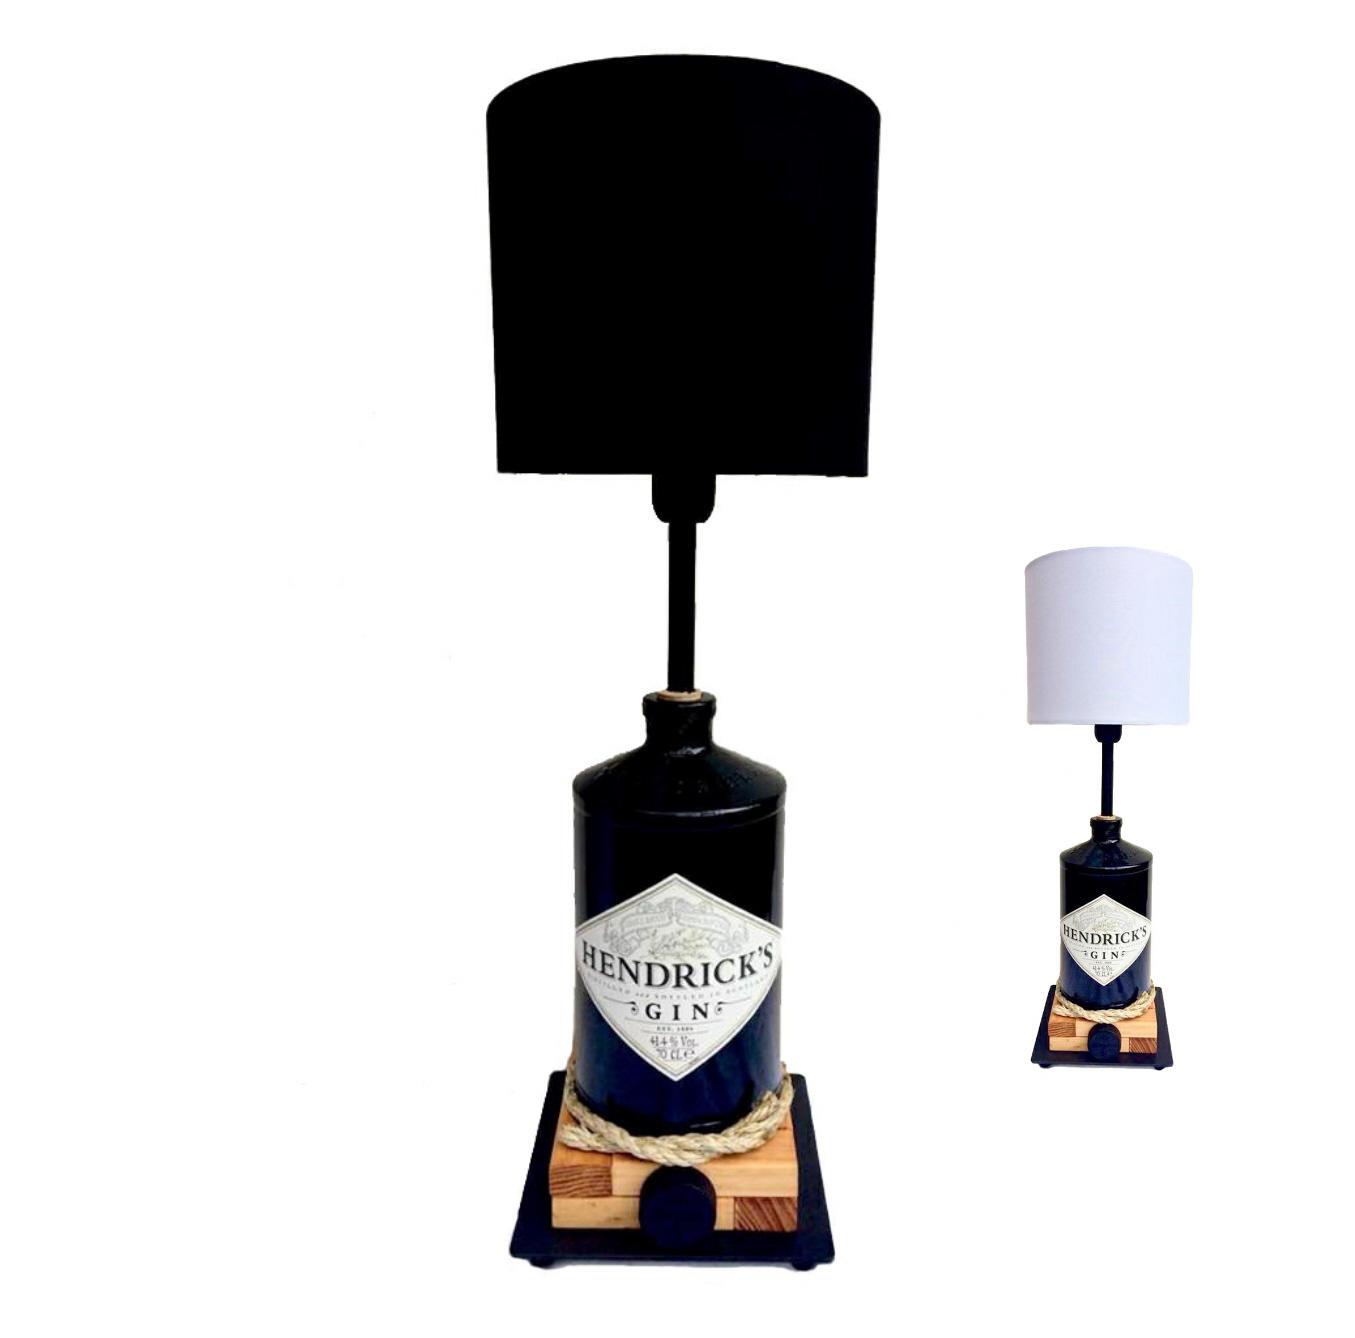 Hendrick's Gin Table Lamp